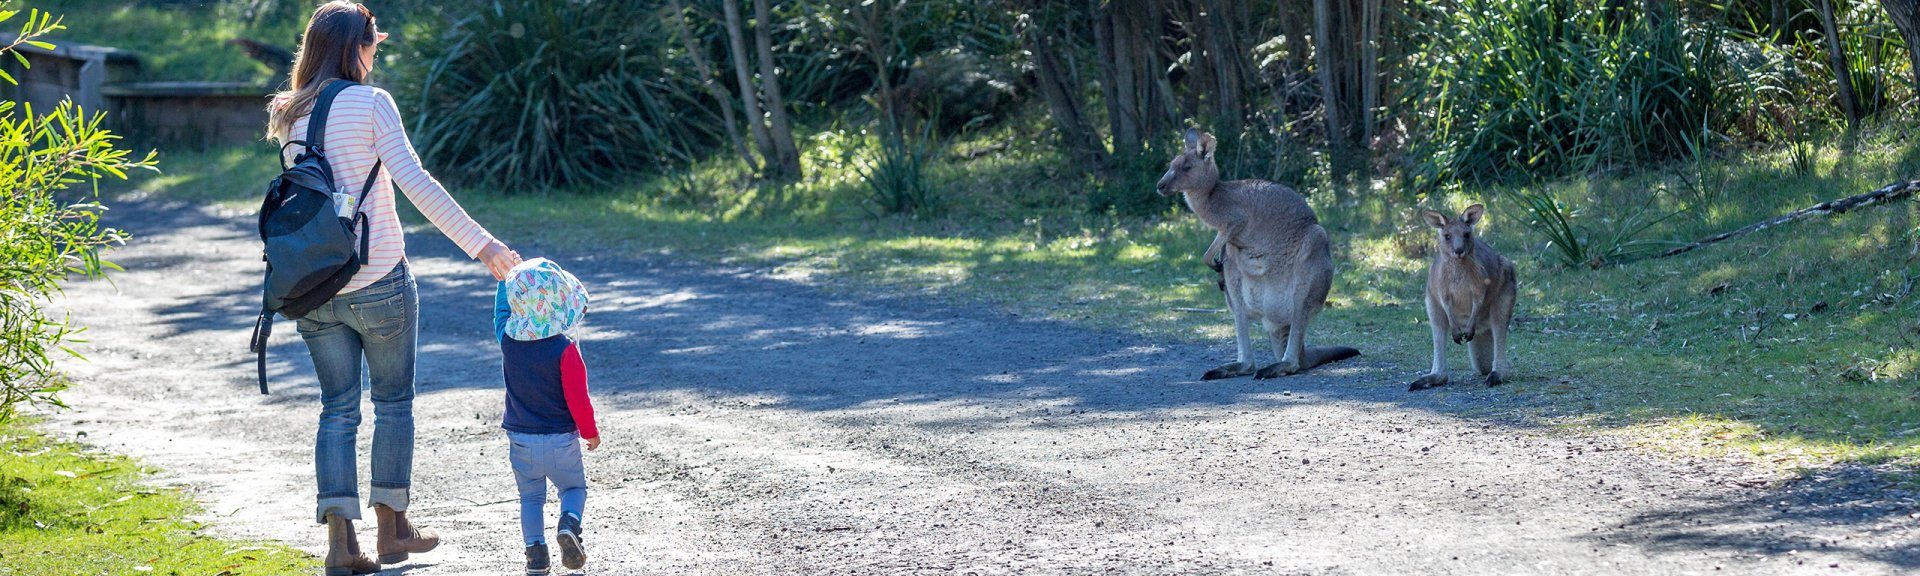 Kangaroo encounters at Booderee